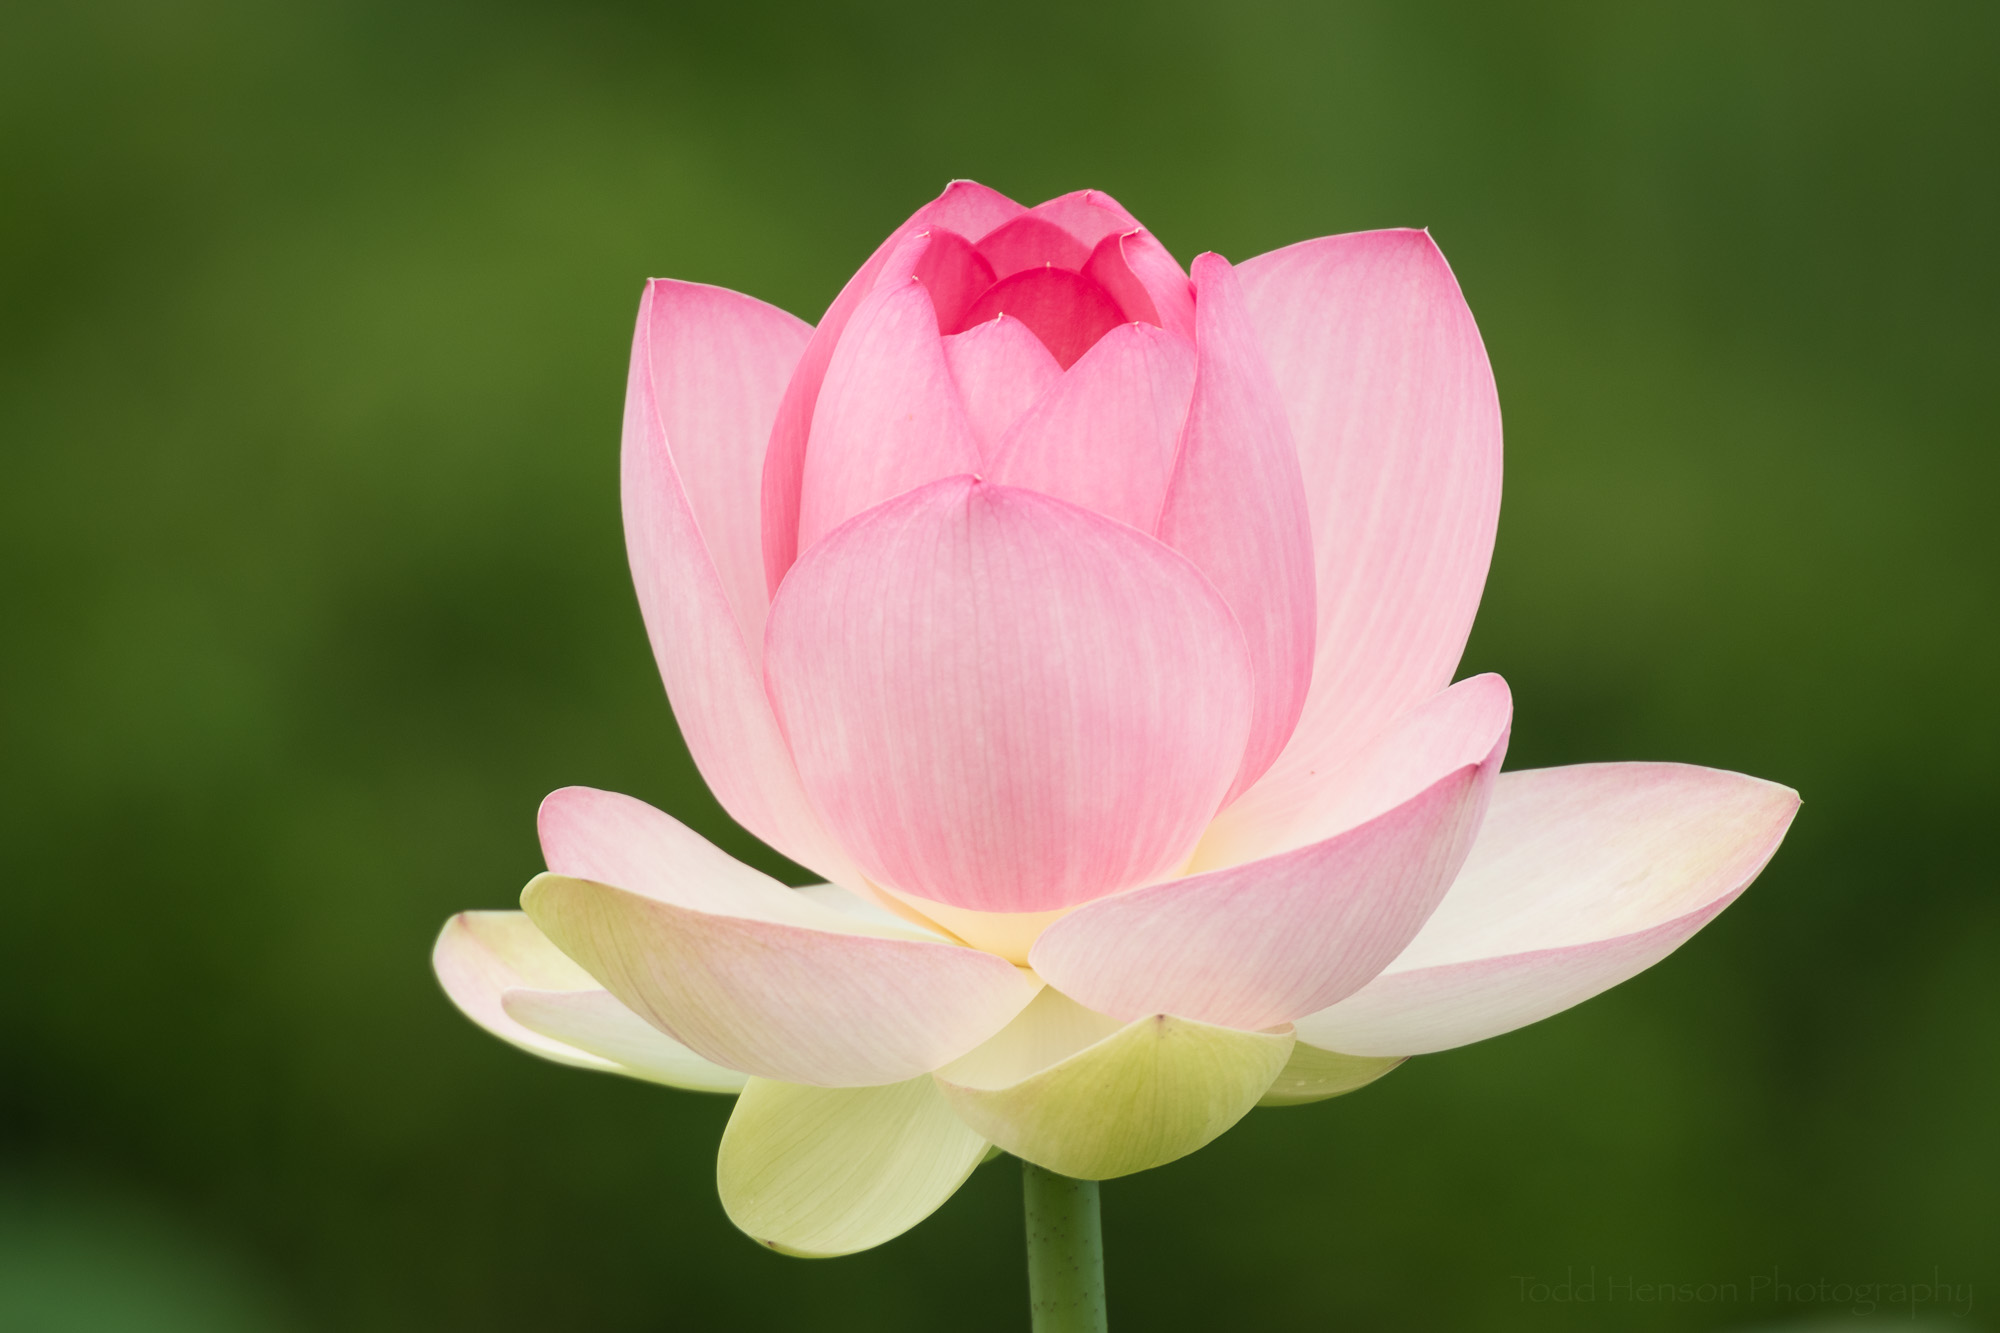 Newly opened lotus flower at Kenilworth Aquatic Gardens